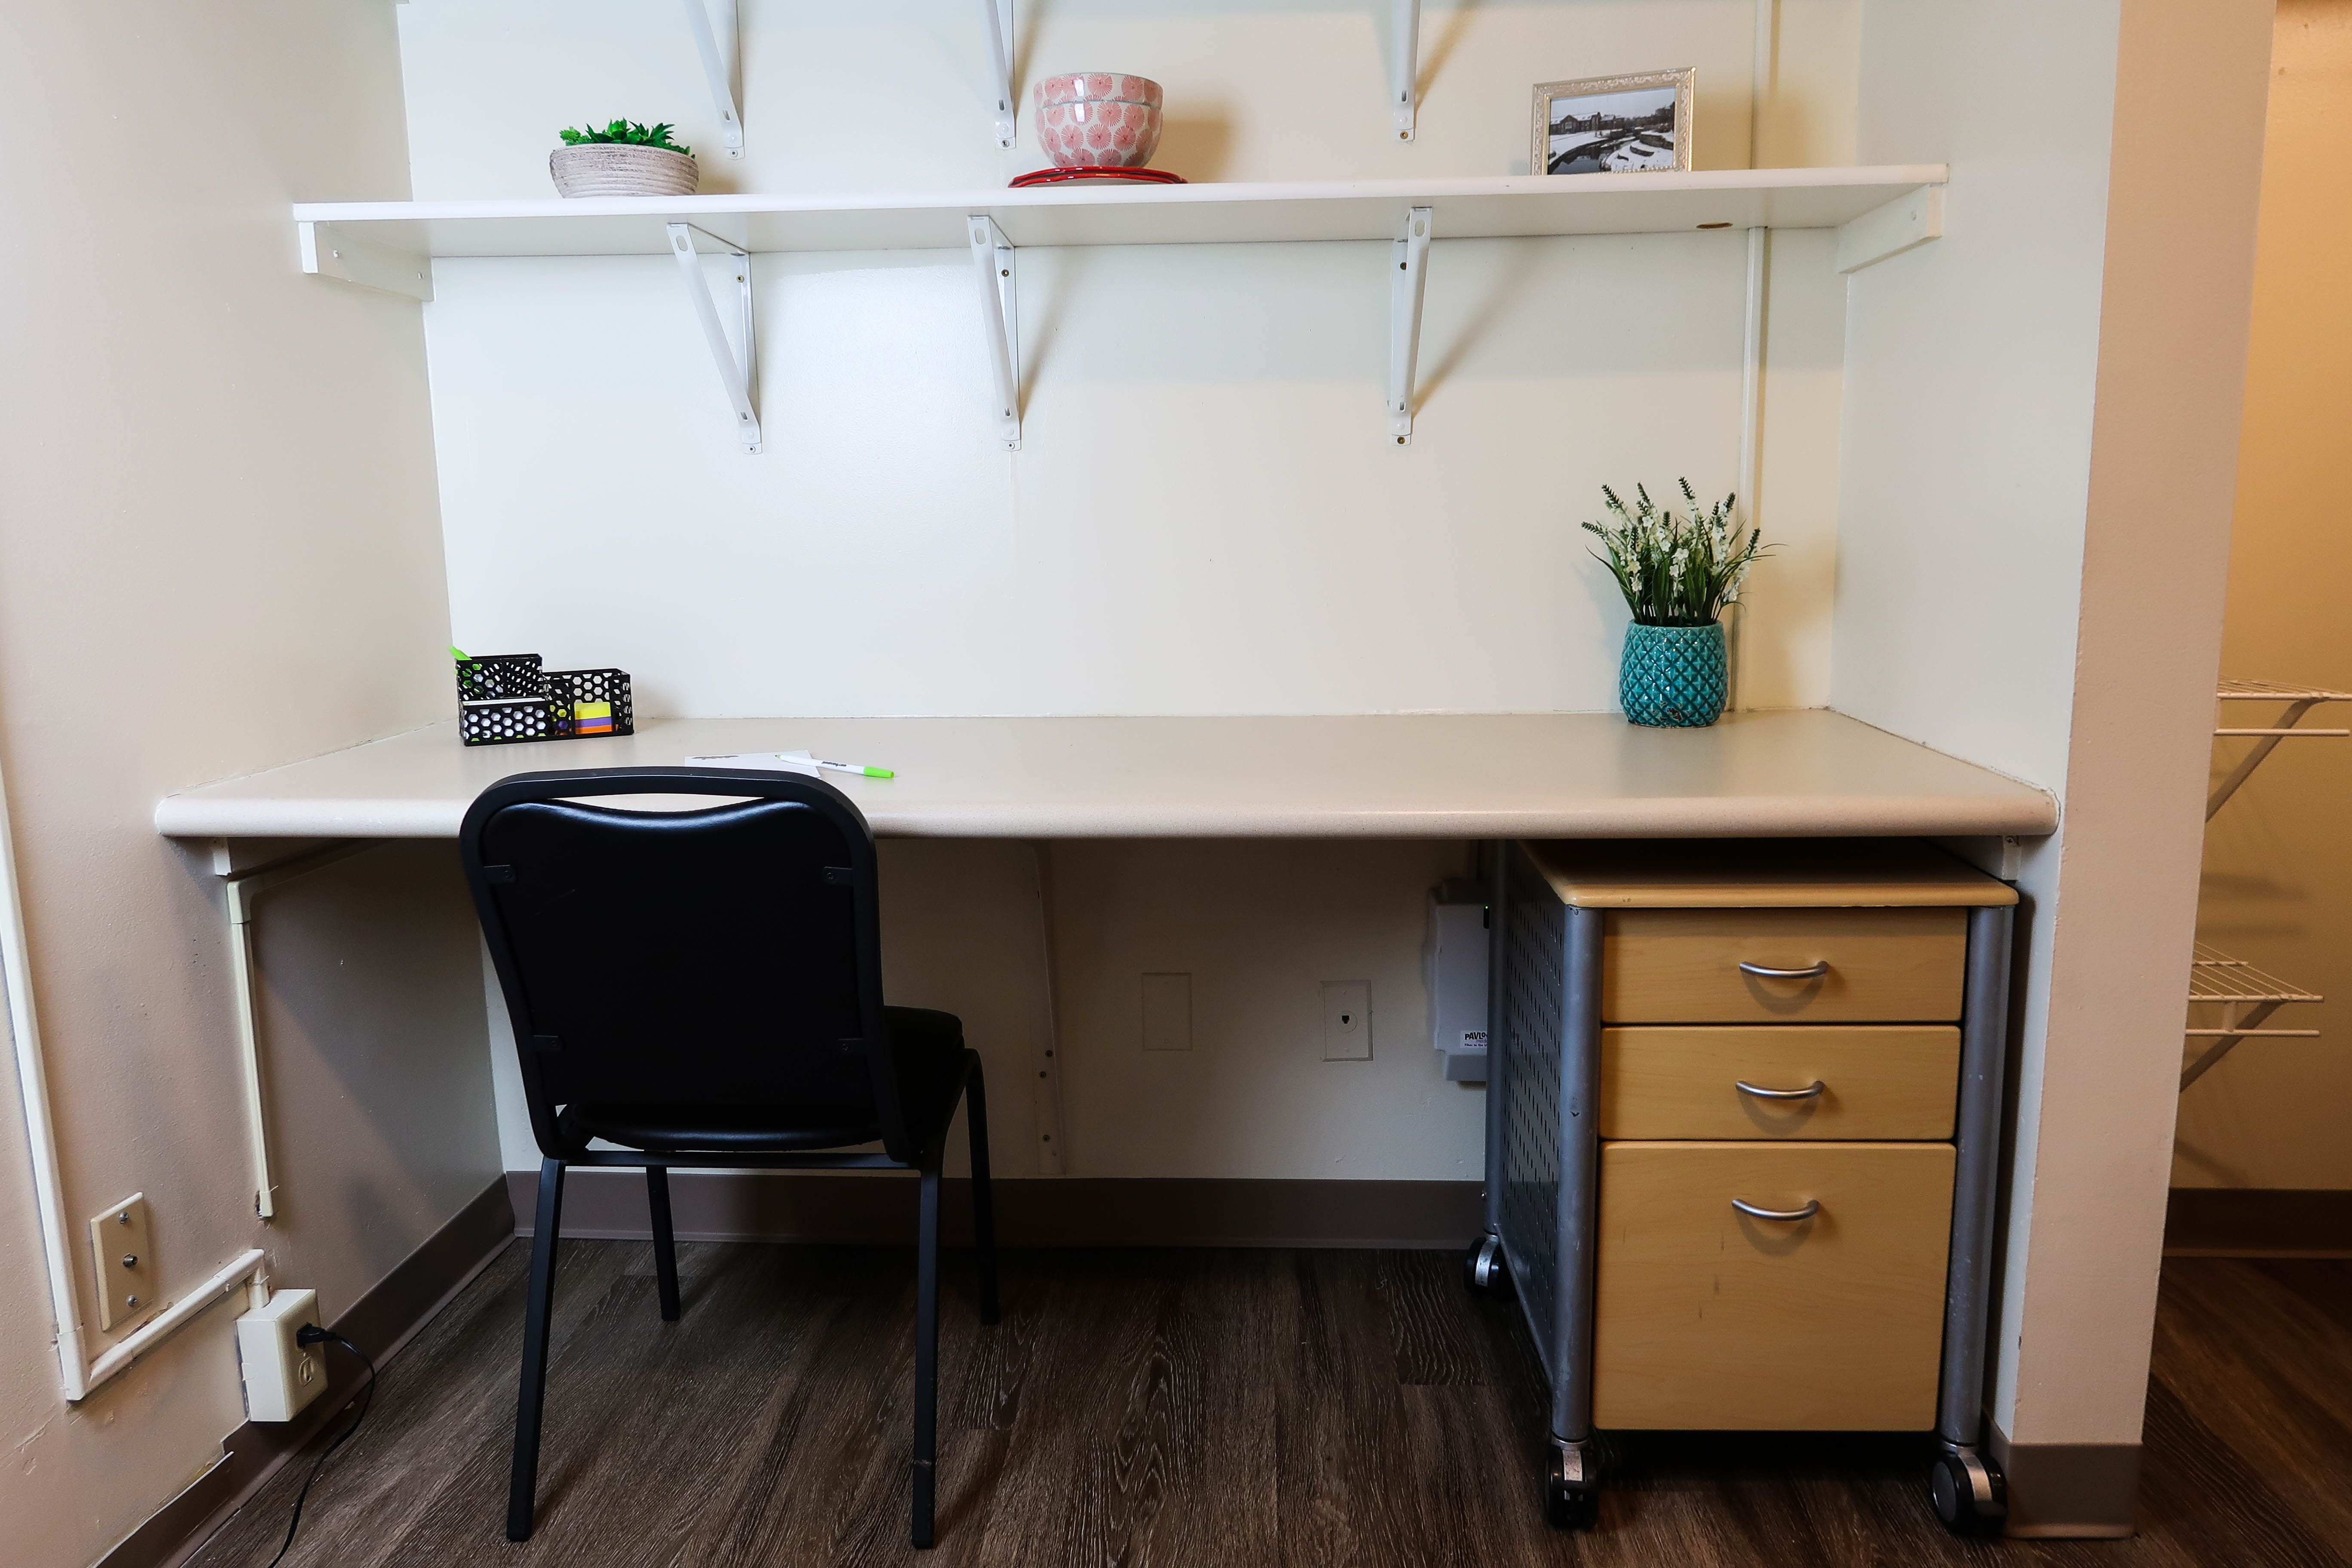 These Studio Apartments Are Located Just Blocks Away From The Main Quad At The University Of Illinois Urbana Champa Apartment Studio Apartment Urbana Champaign